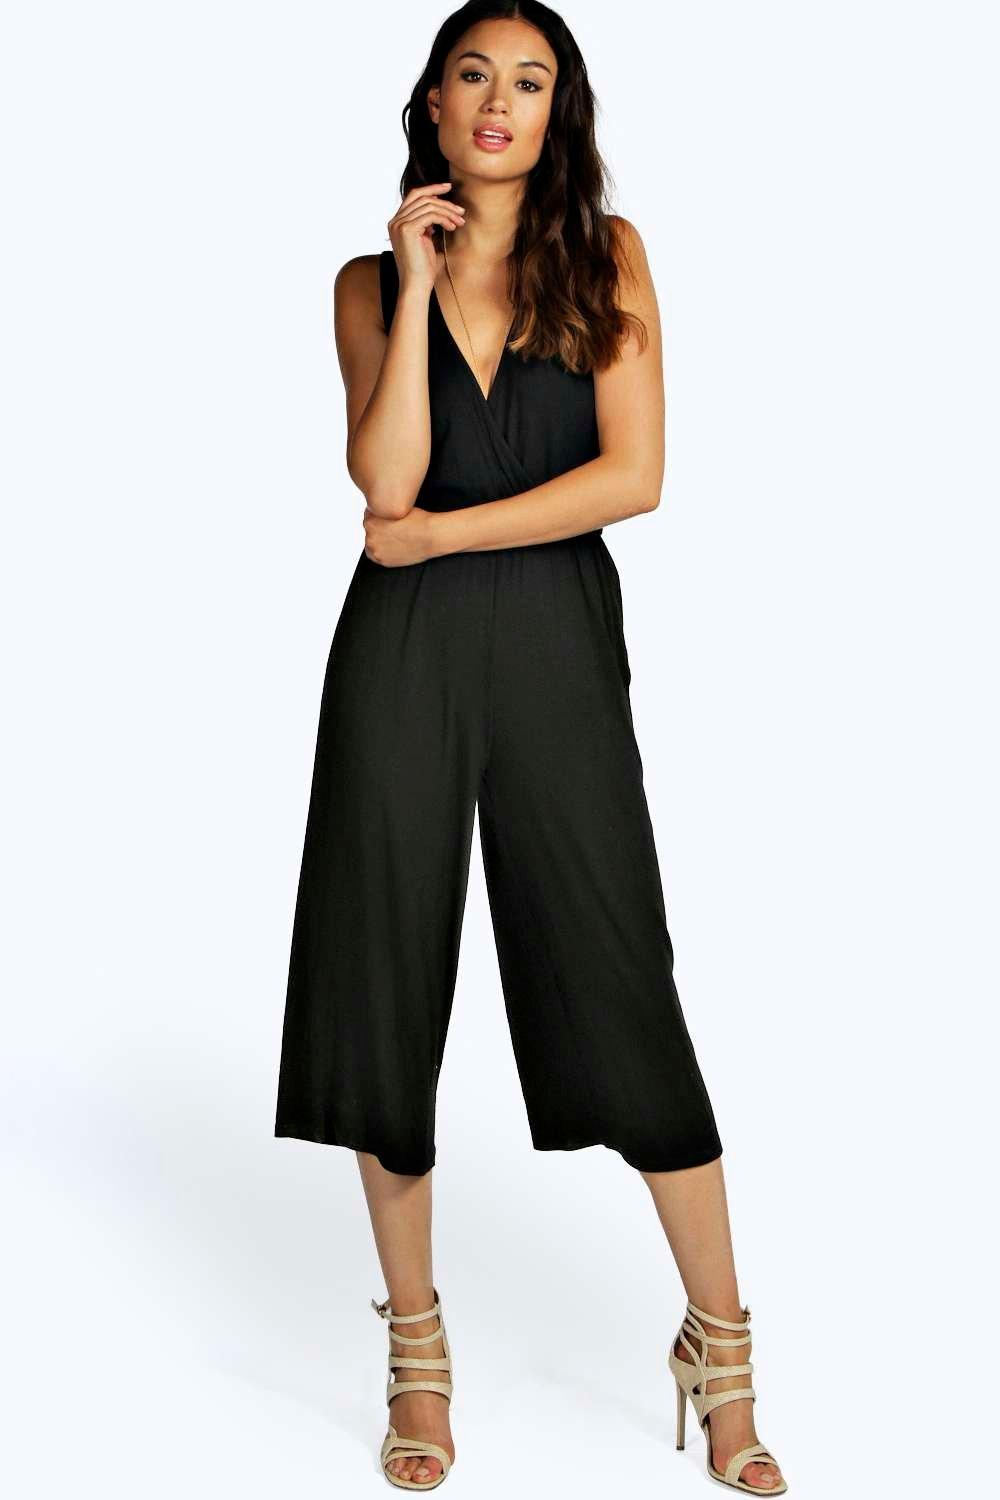 Boohoo Womens Kimi Wrap Over Culotte Jumpsuit | EBay